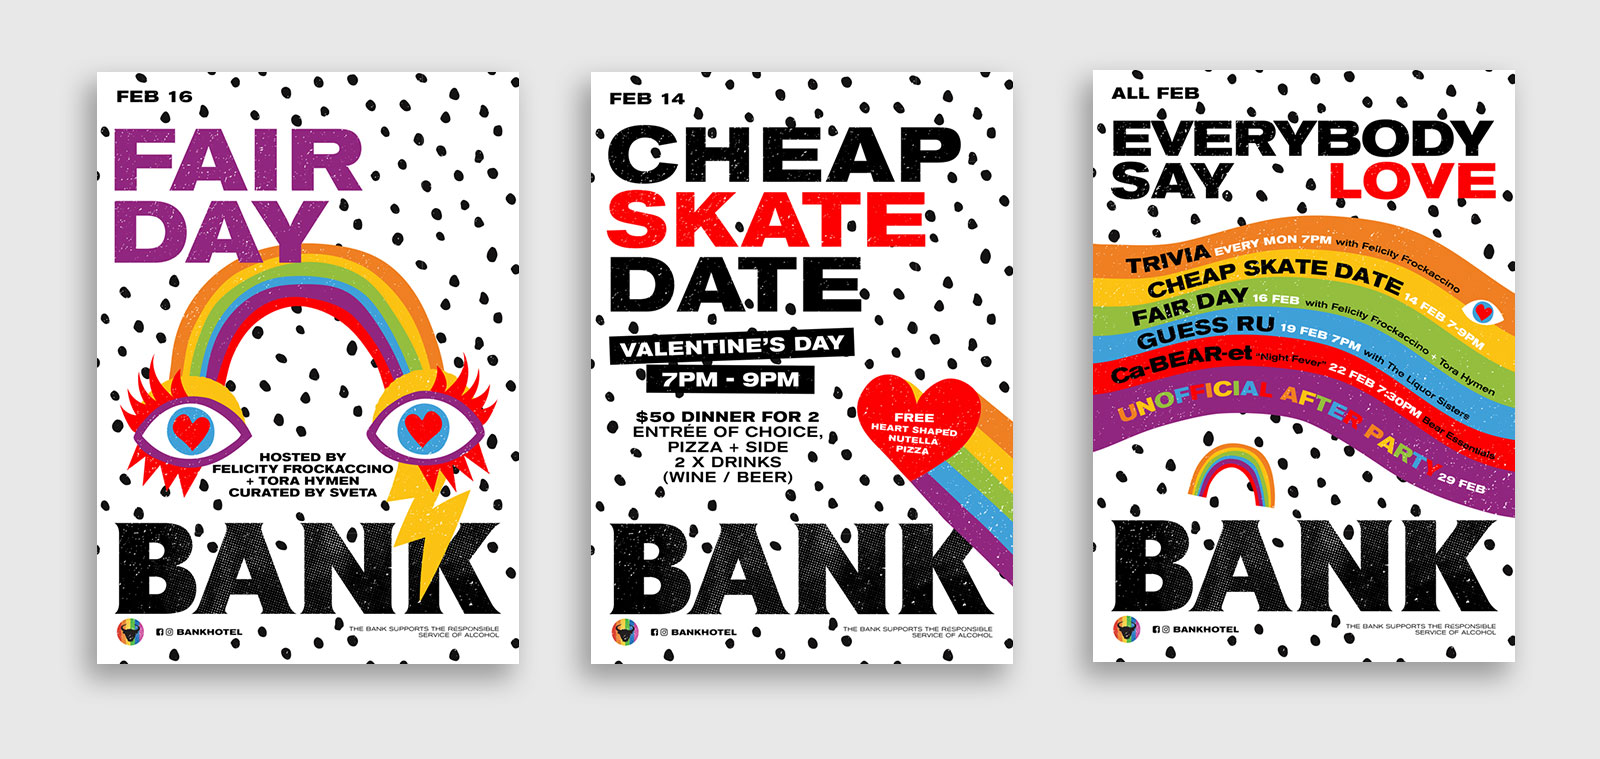 sydney design social bank hotel newtown mardi gras fair day poster design